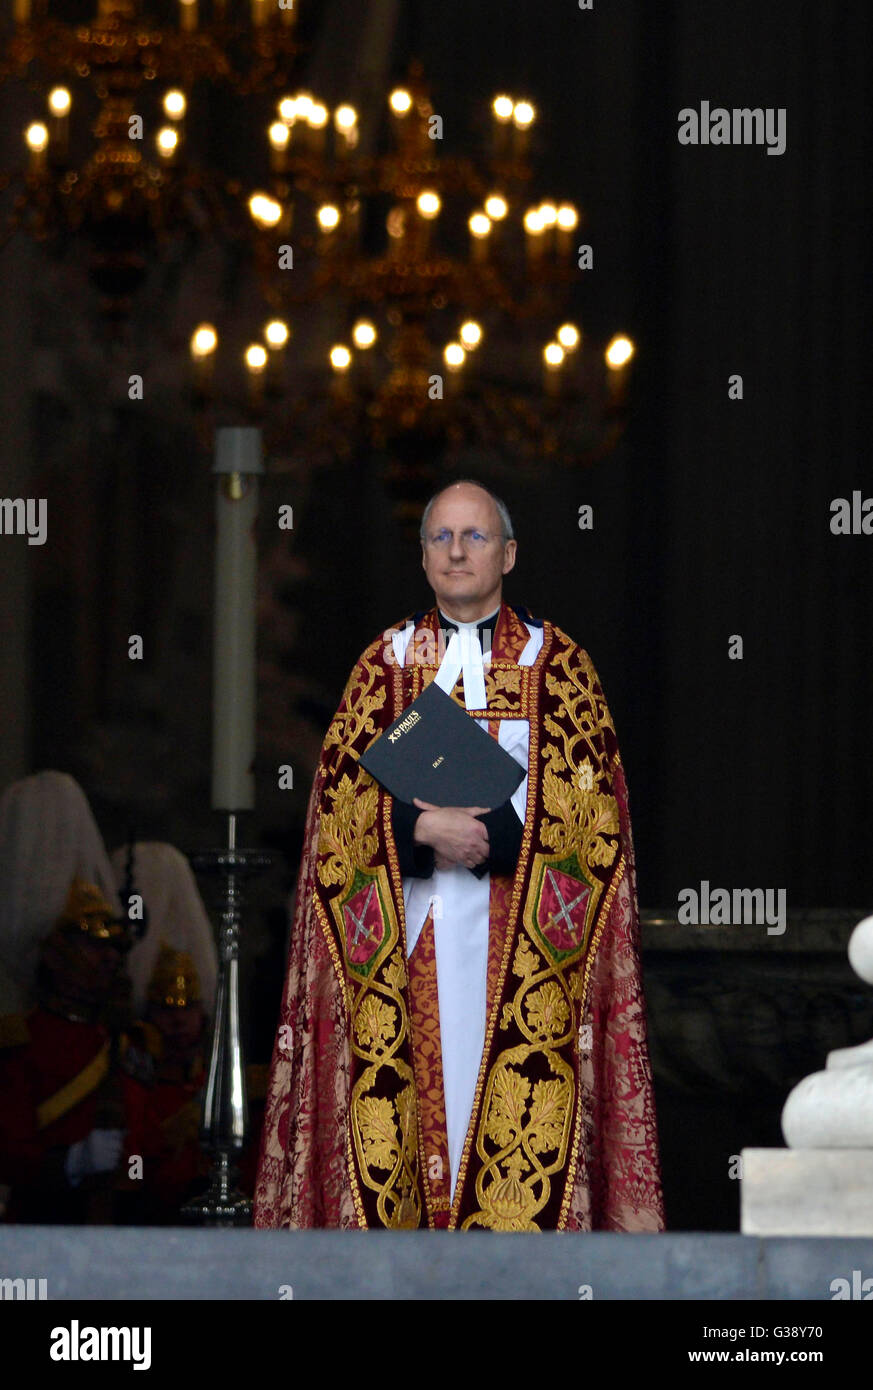 Archbishop of Canterbury, Justin Welby at National Service of Thanksgiving to mark Queen Elizabeth II's 90th - Stock Image